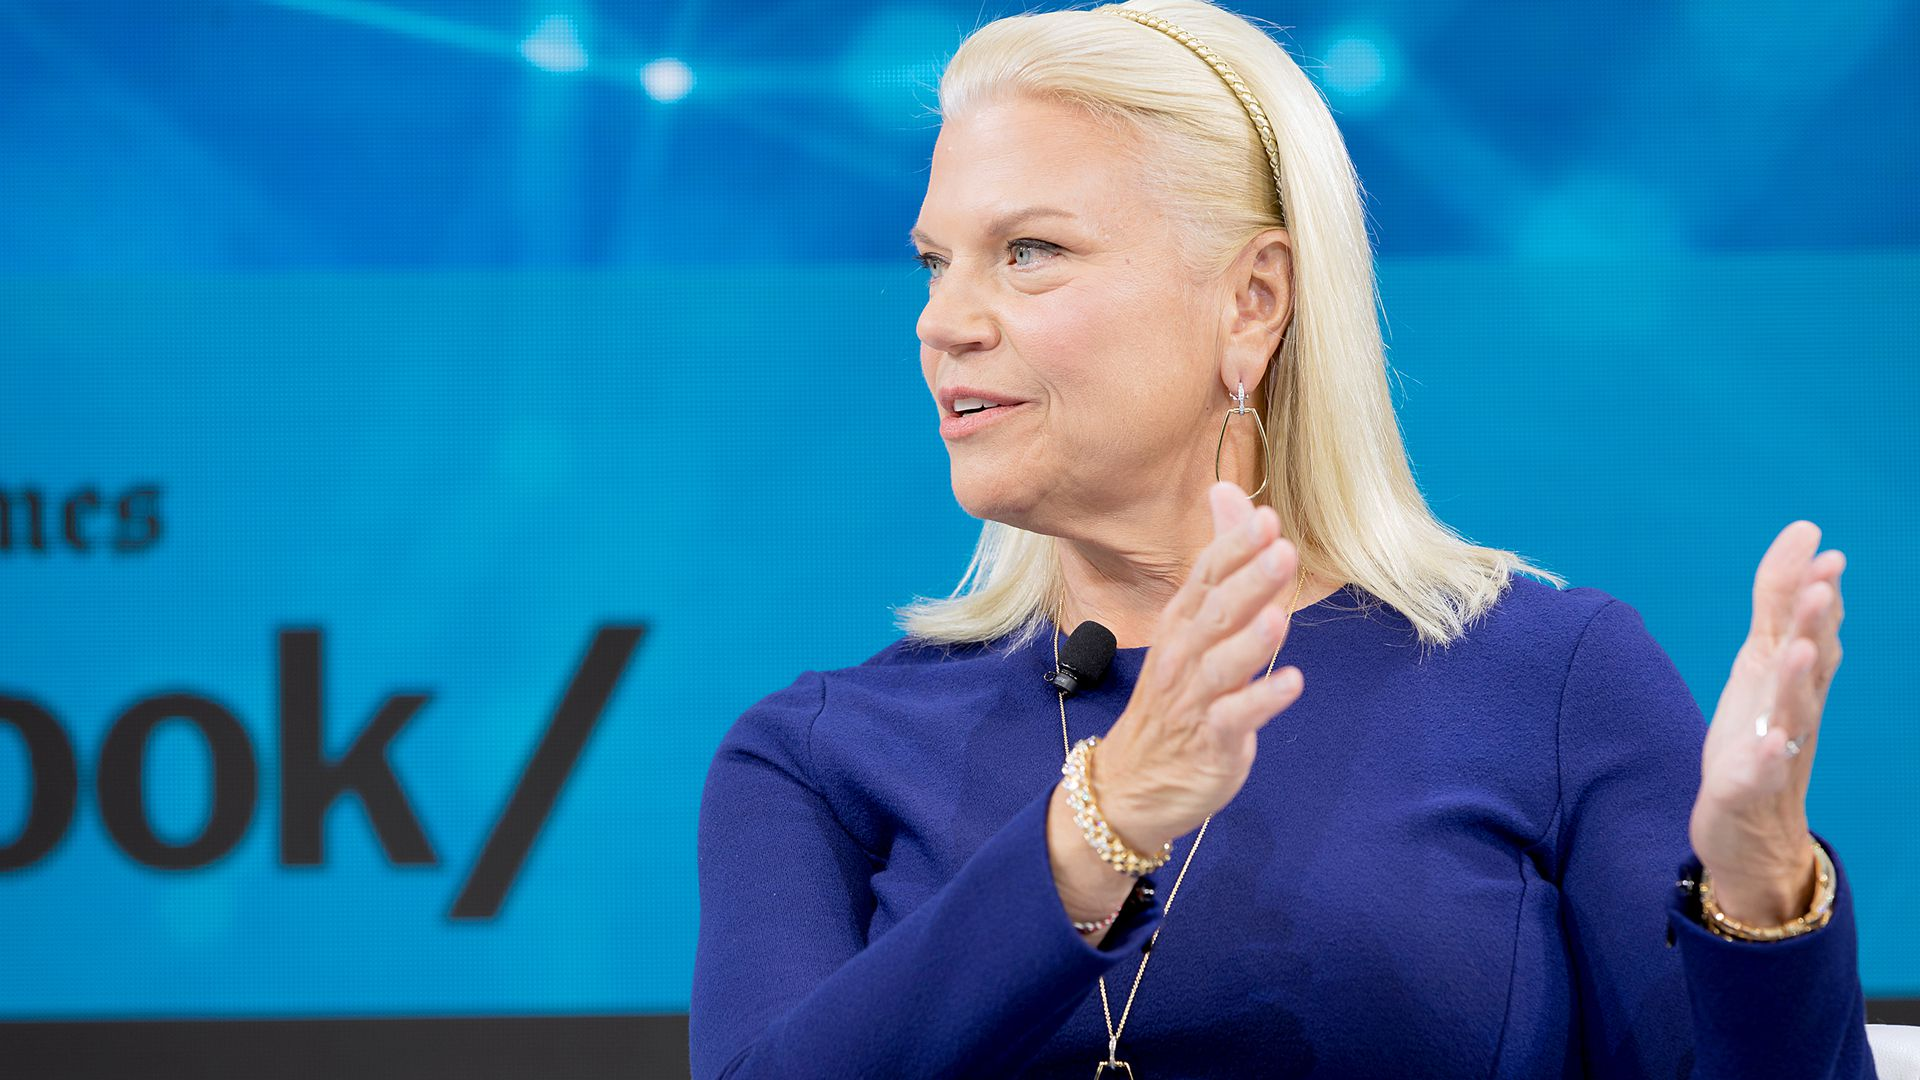 Rometty to step down as IBM CEO in April